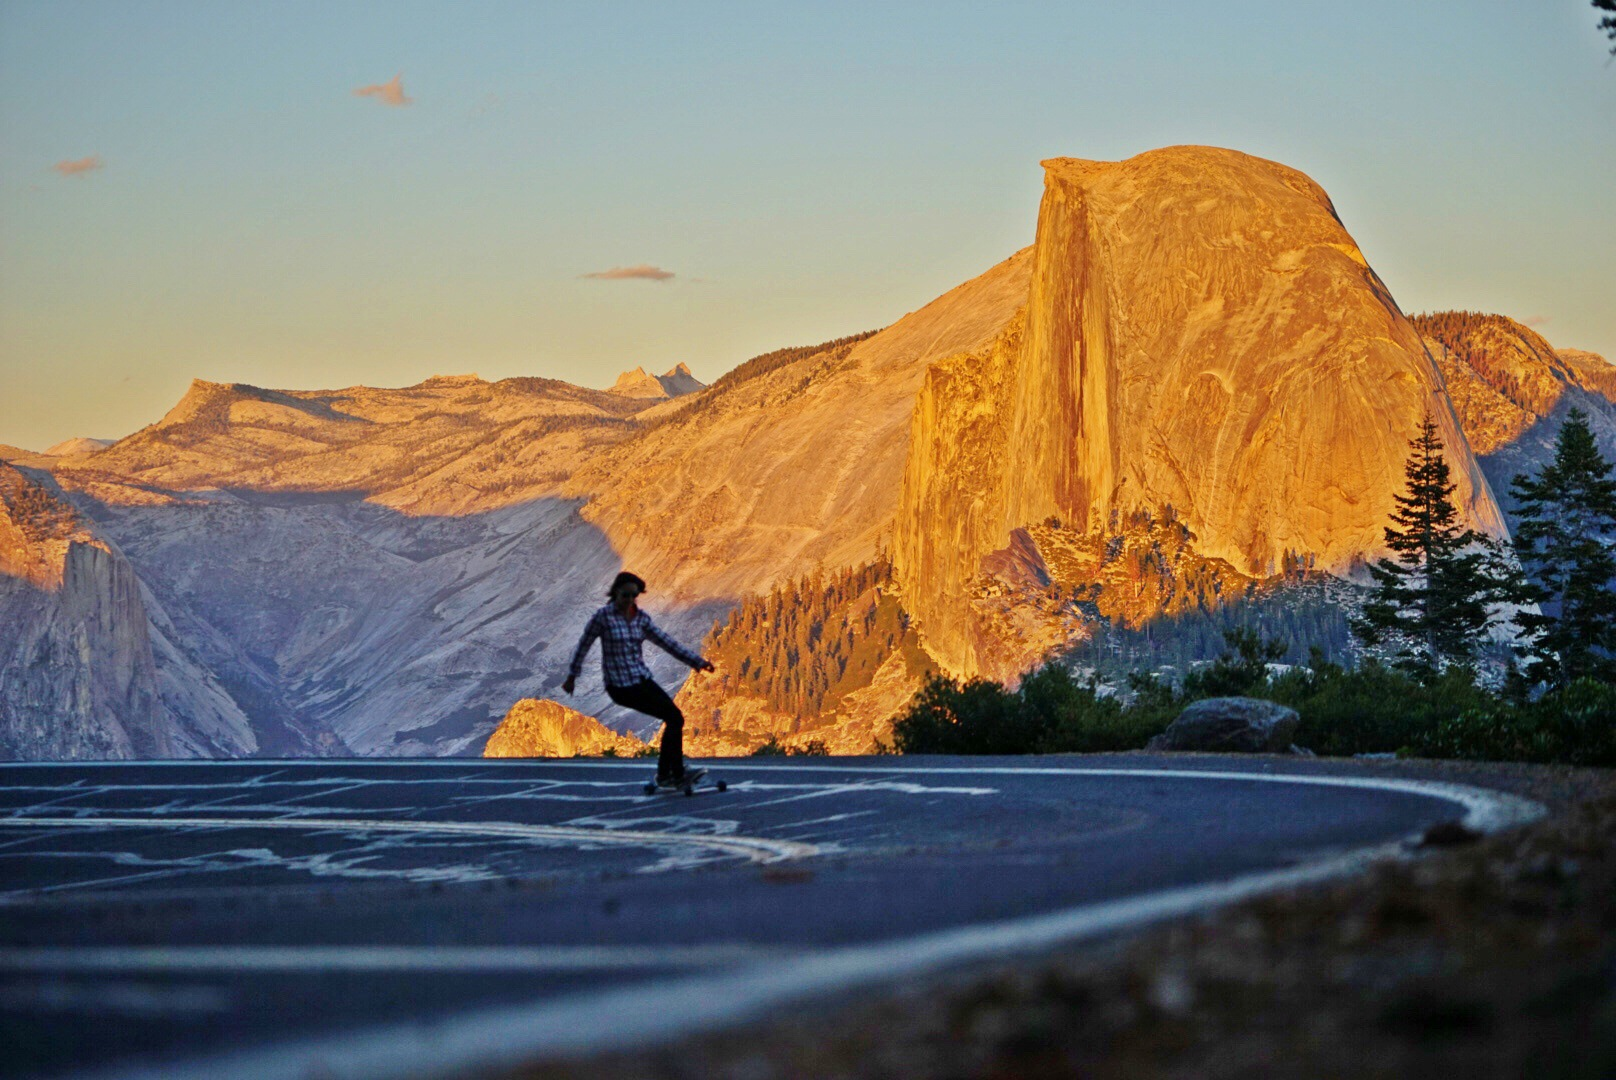 Skateboarding the open roads of Yosemite by Caleb Norman